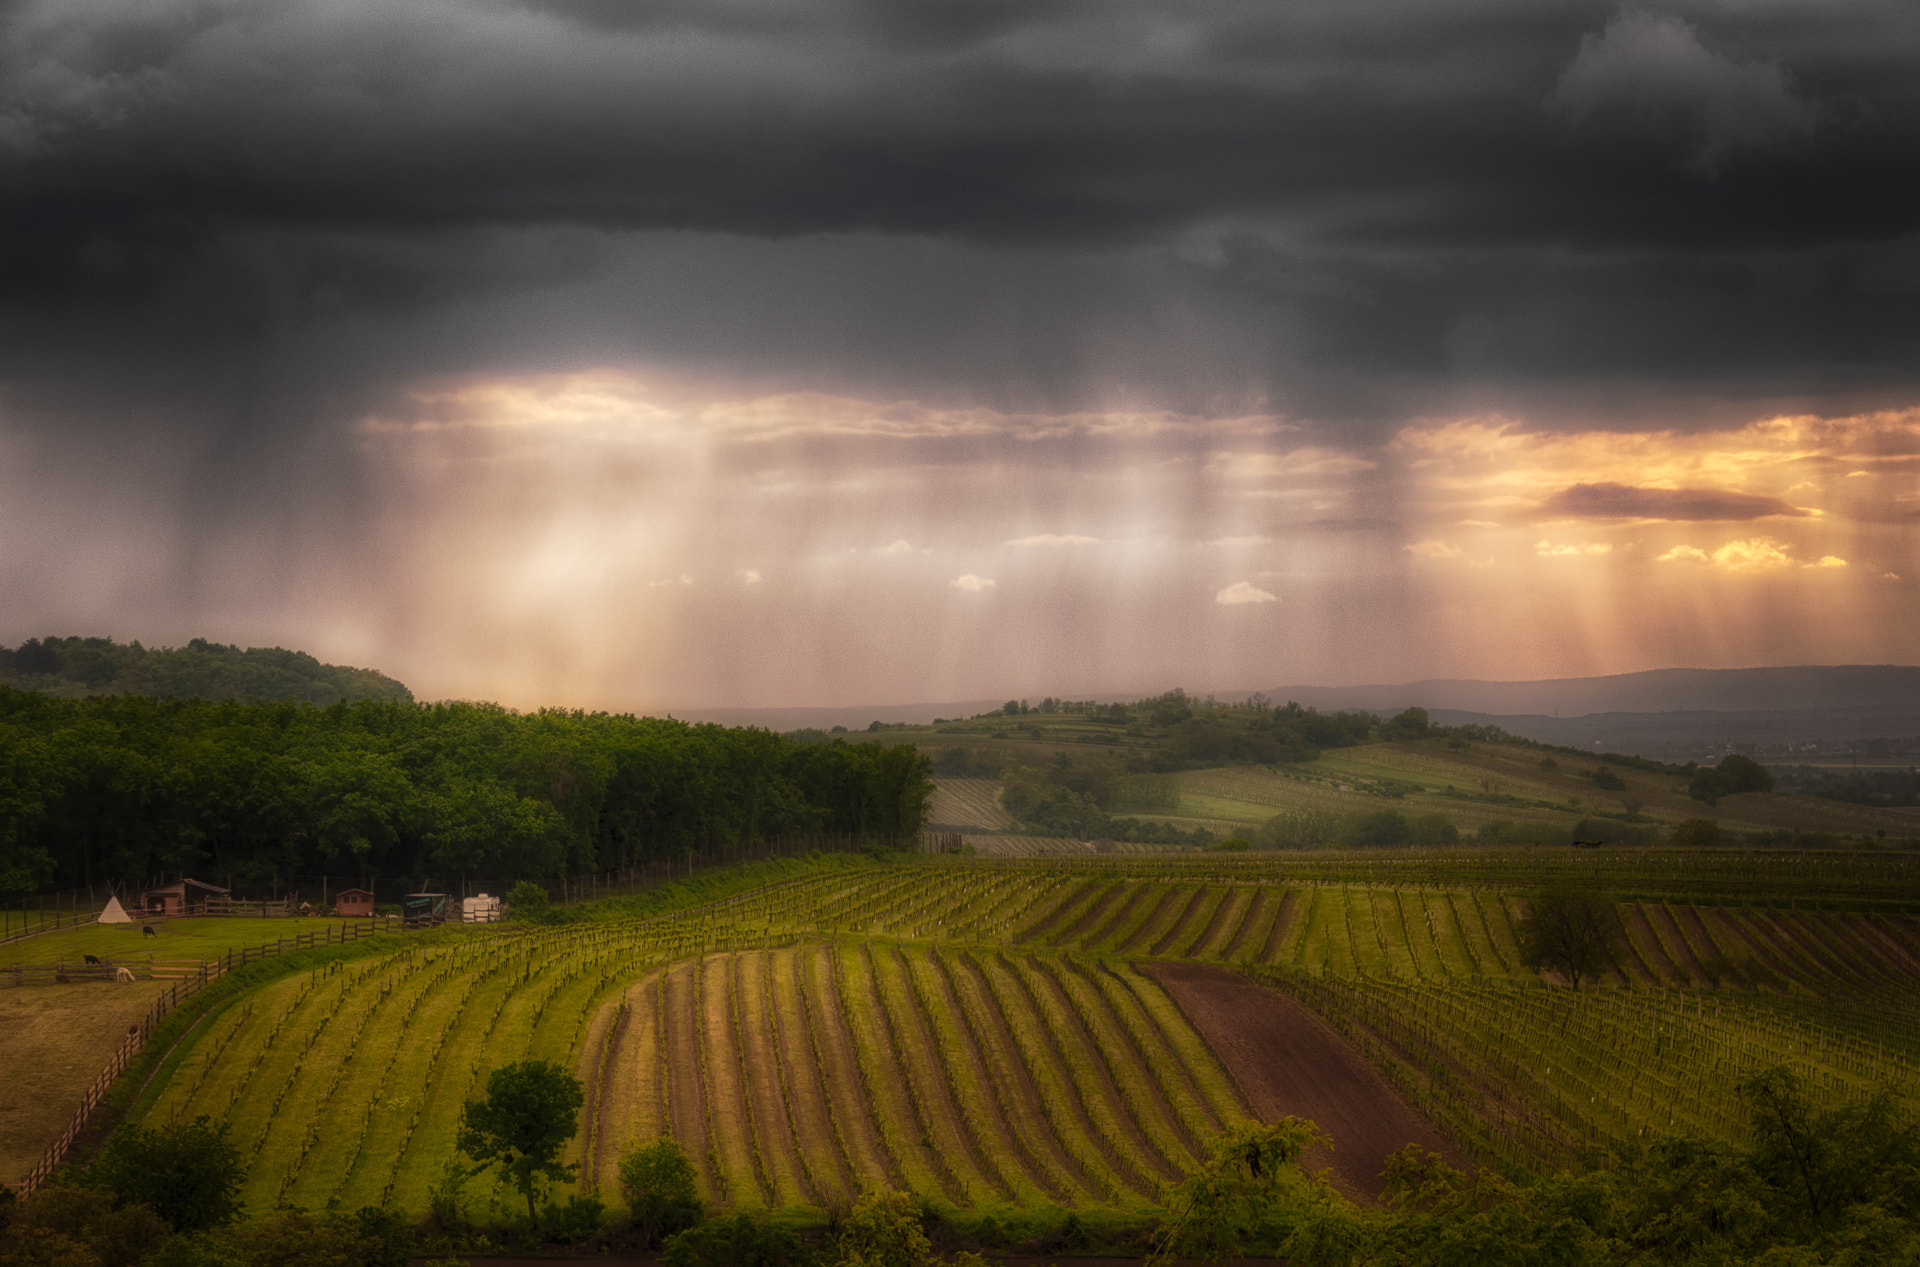 Photograph Hailstorm Arrival by Ernst Gamauf on 500px